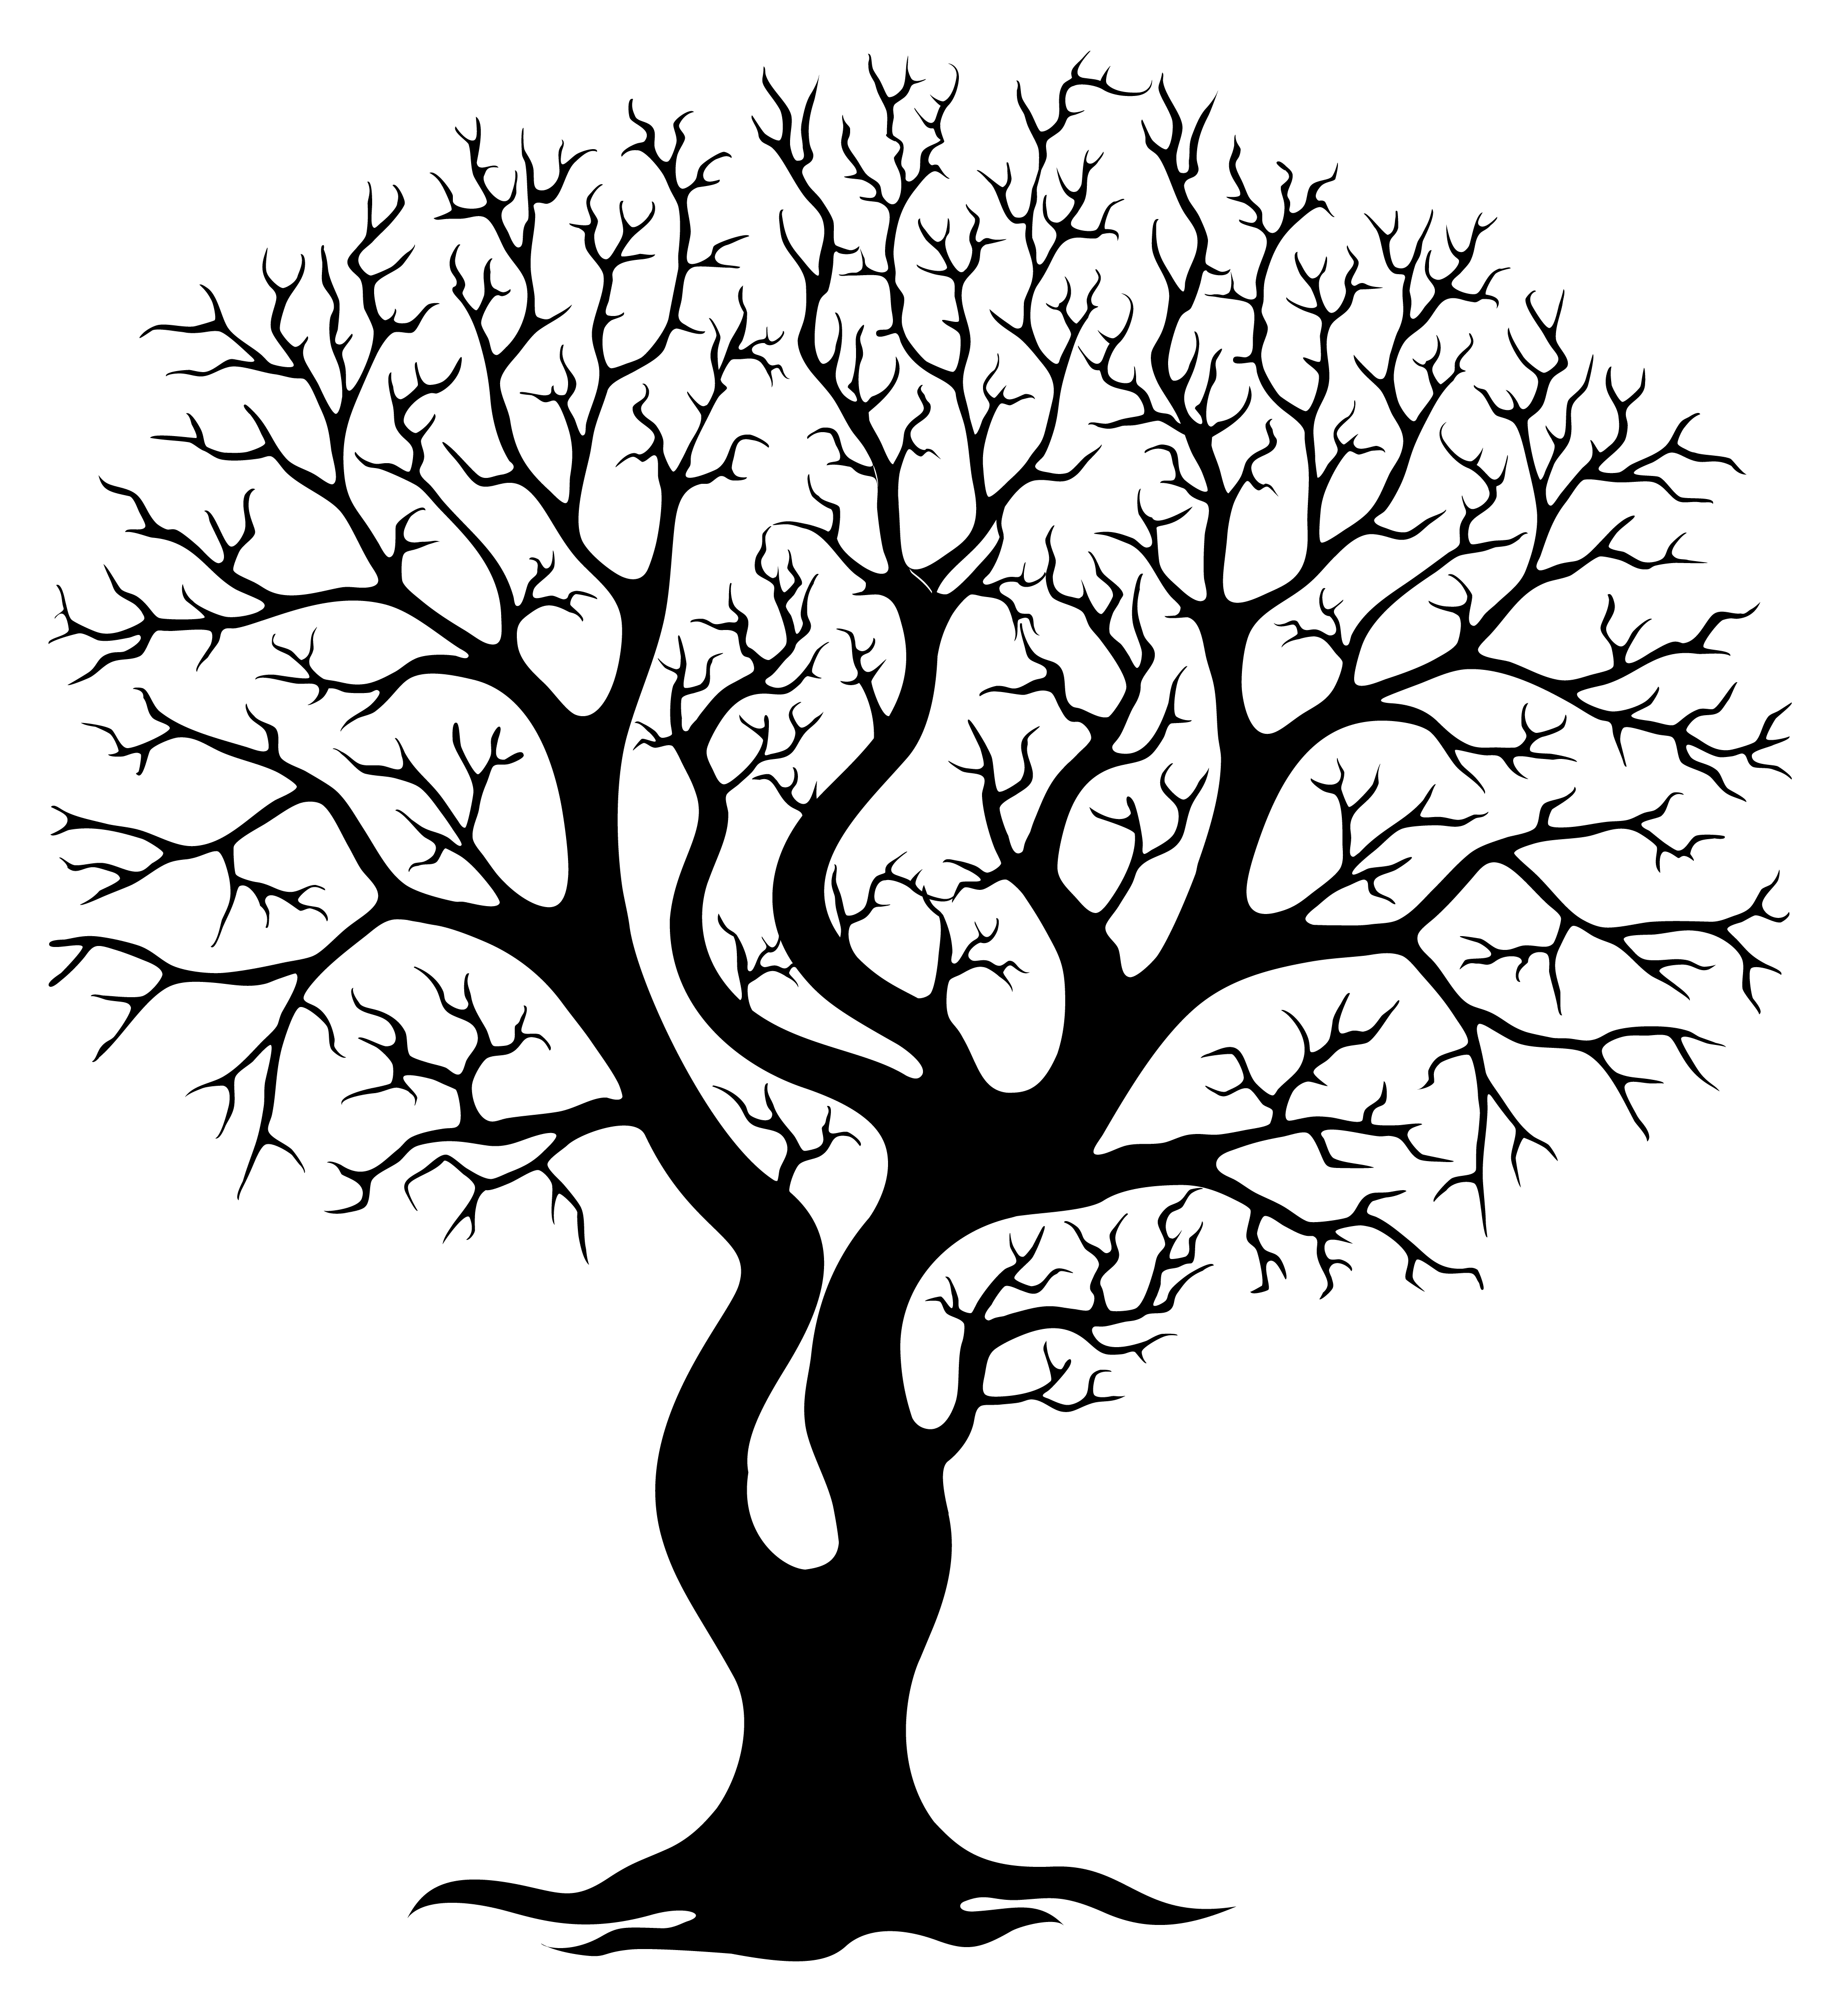 Bare Trees Clipart